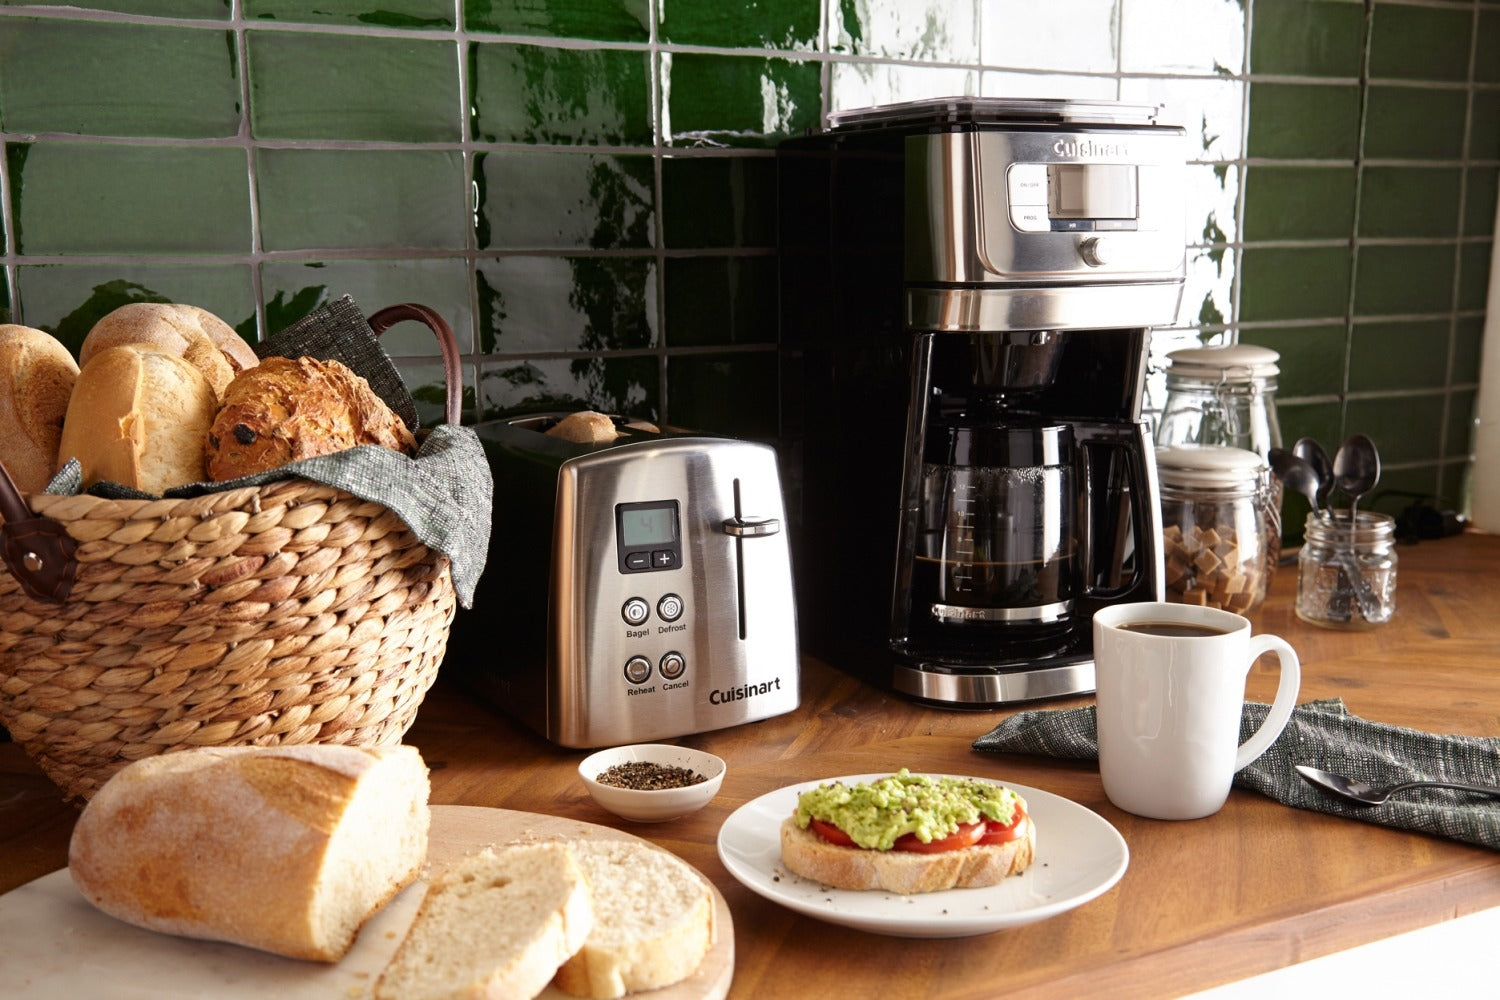 Assortment of Kitchen Appliances and Breads On A Kitchen Counter